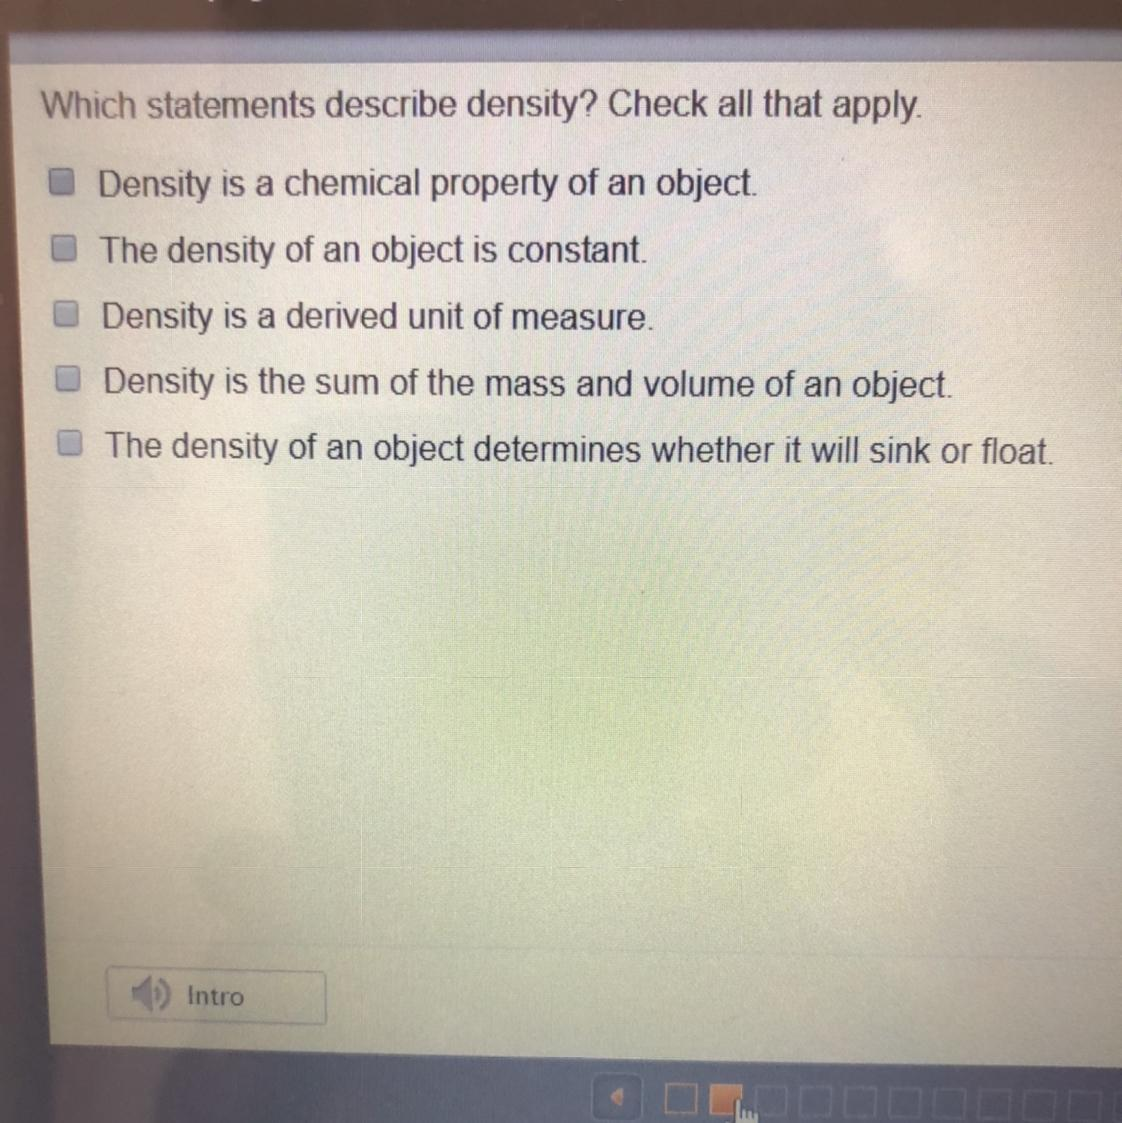 Which statements describes density? Check all that apply